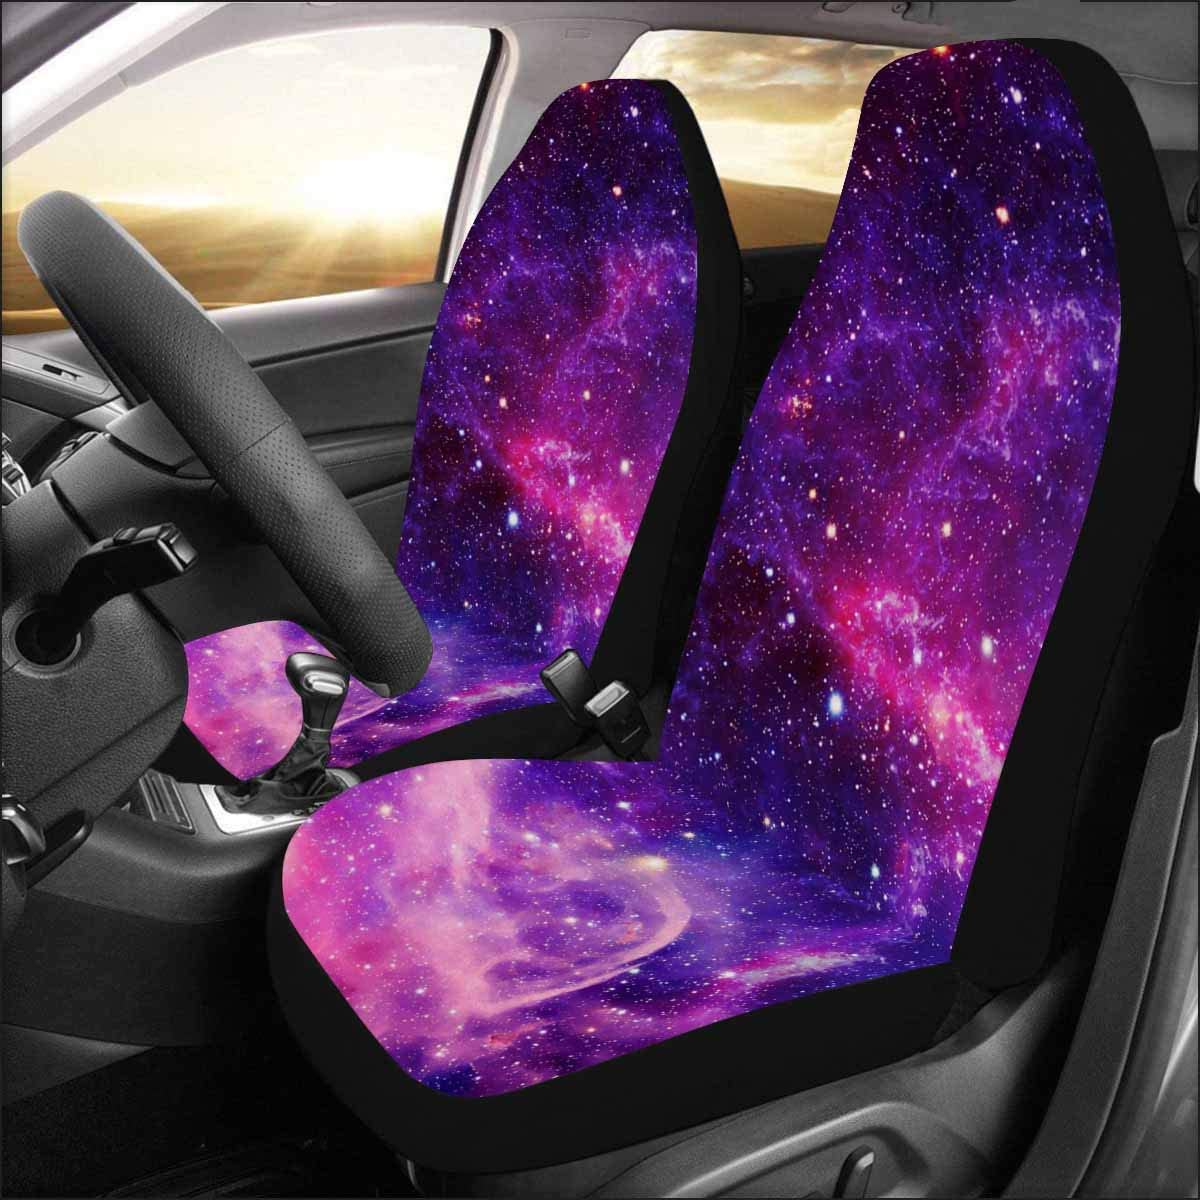 TSVAGA Blue Galaxy Universe Car Seat Covers Full Set Universal Auto Seats Protector Breathable Cover Case Elastic 4PC Automotive Accessories Front and Rear Backseat Decor Fit Most Vehicle